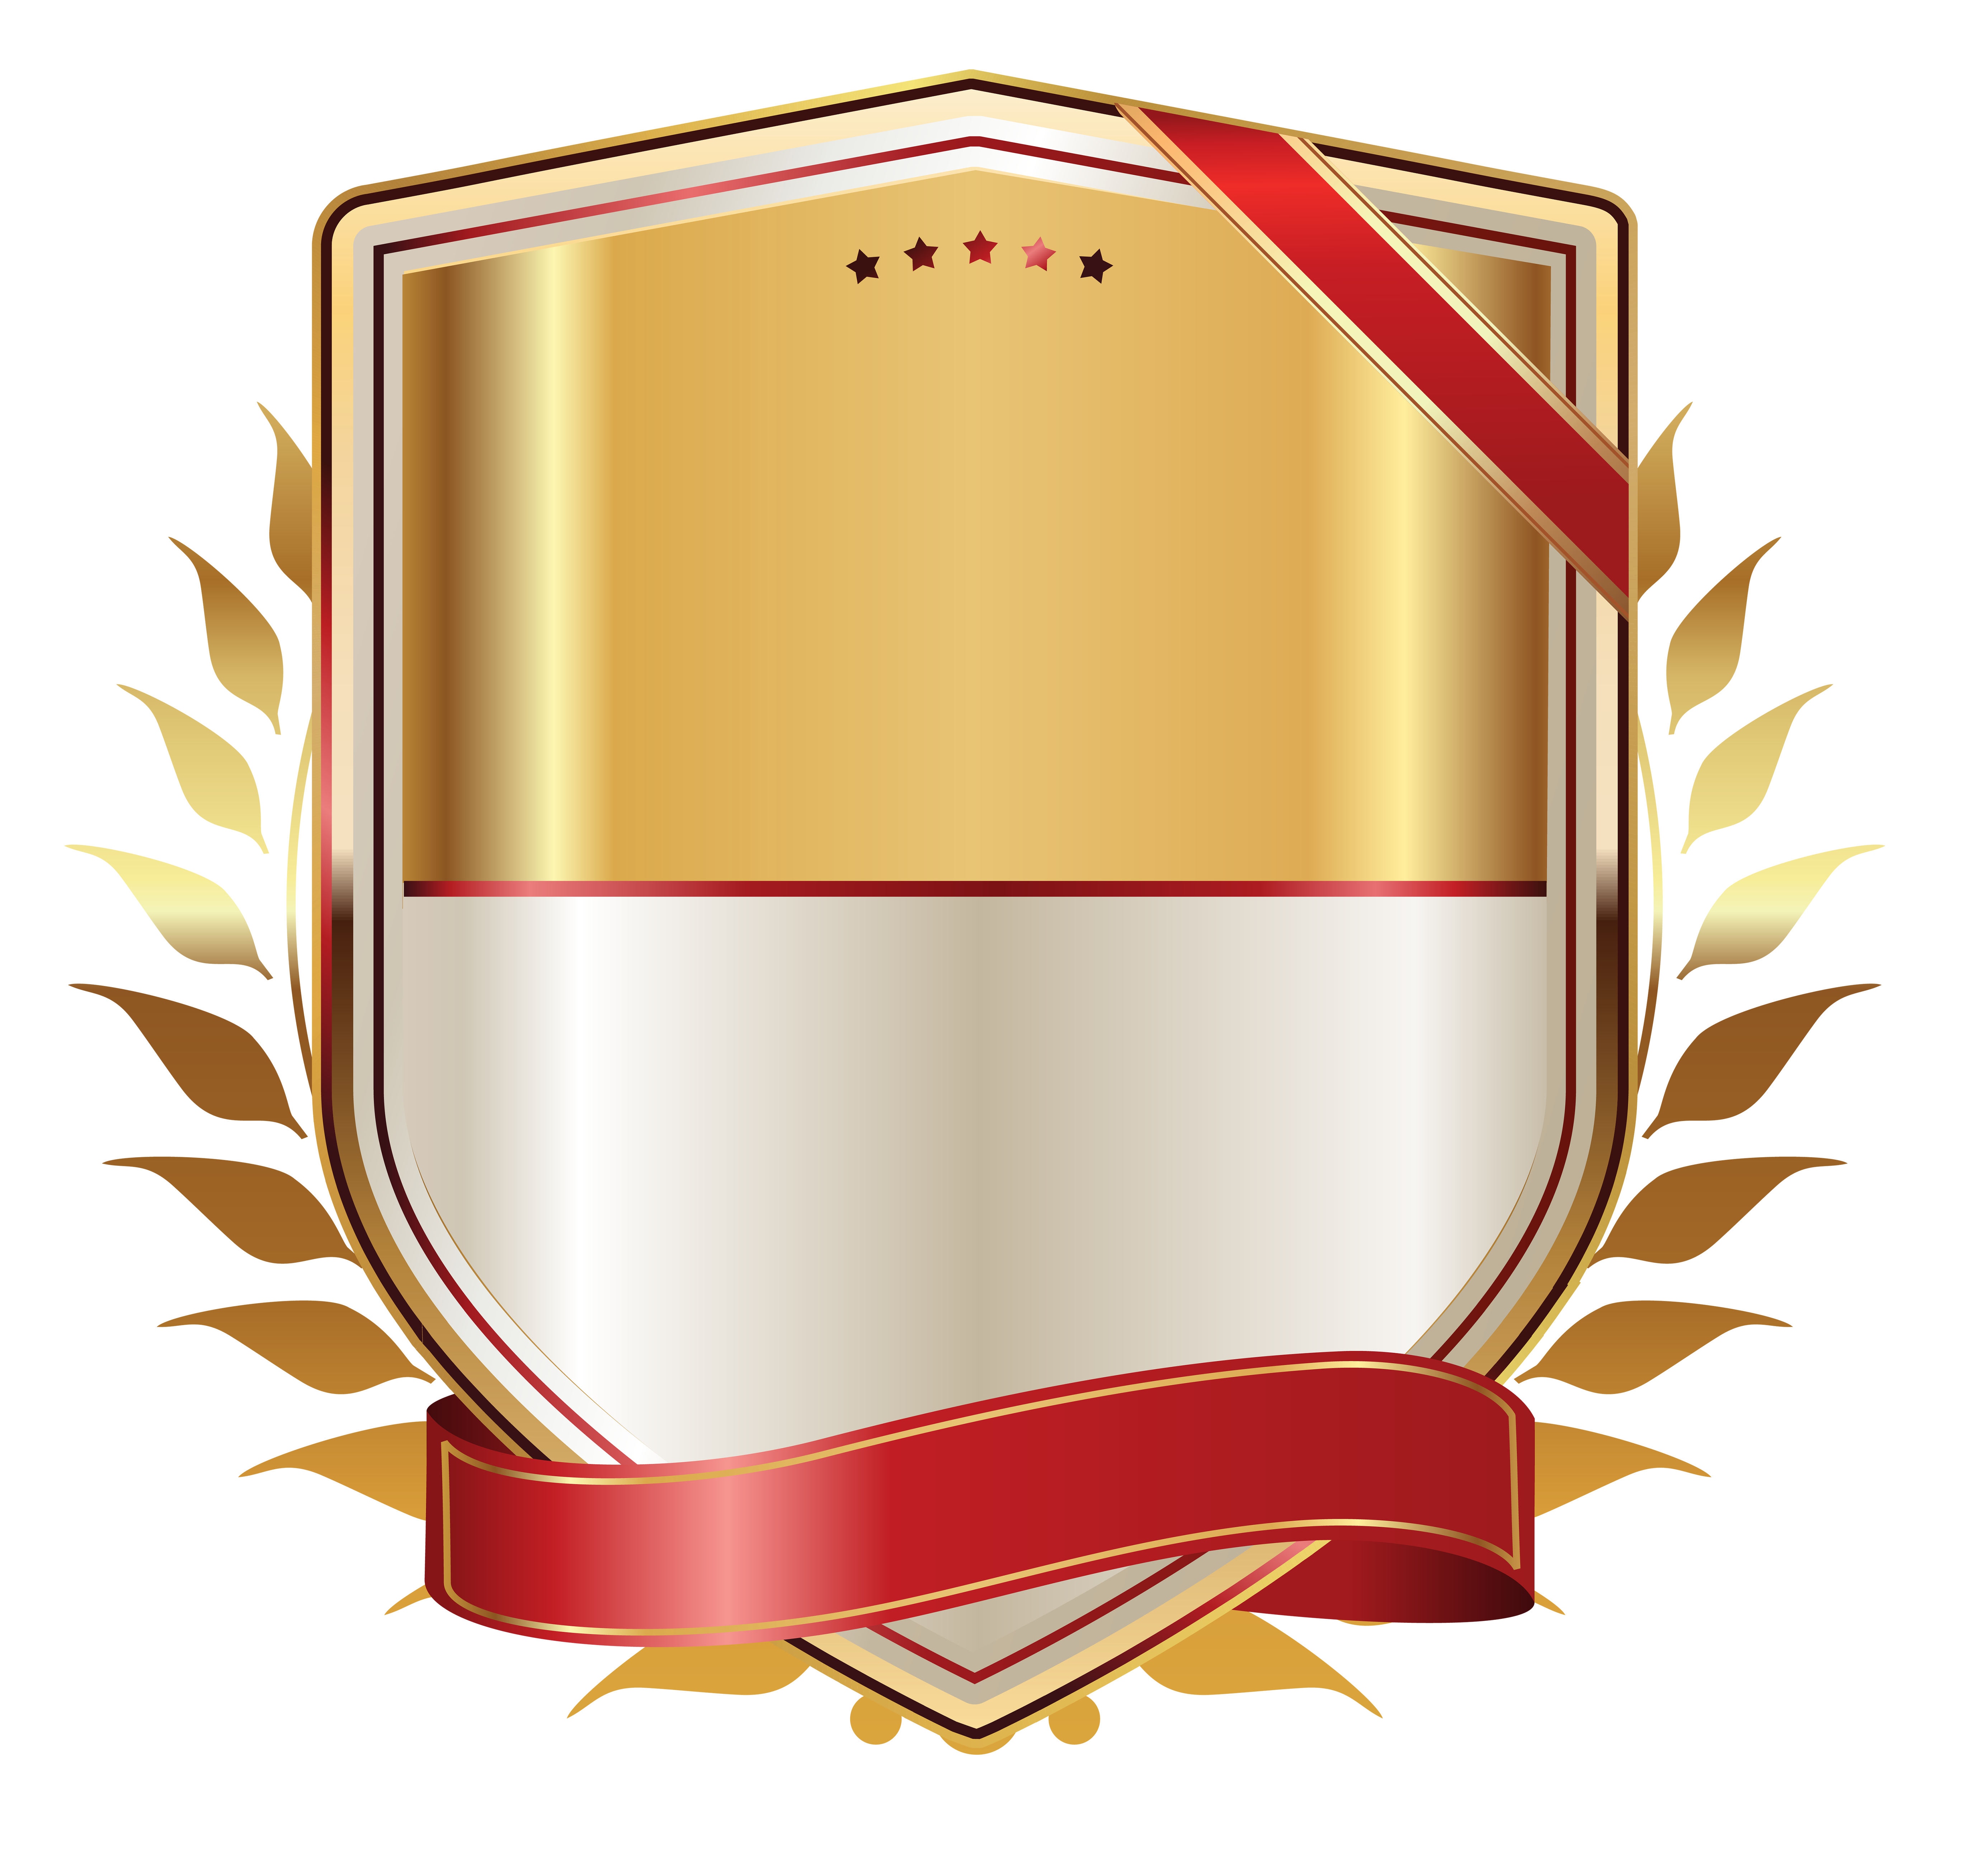 Golden Label With Gold Ribbon Png Clipart Image Vectores